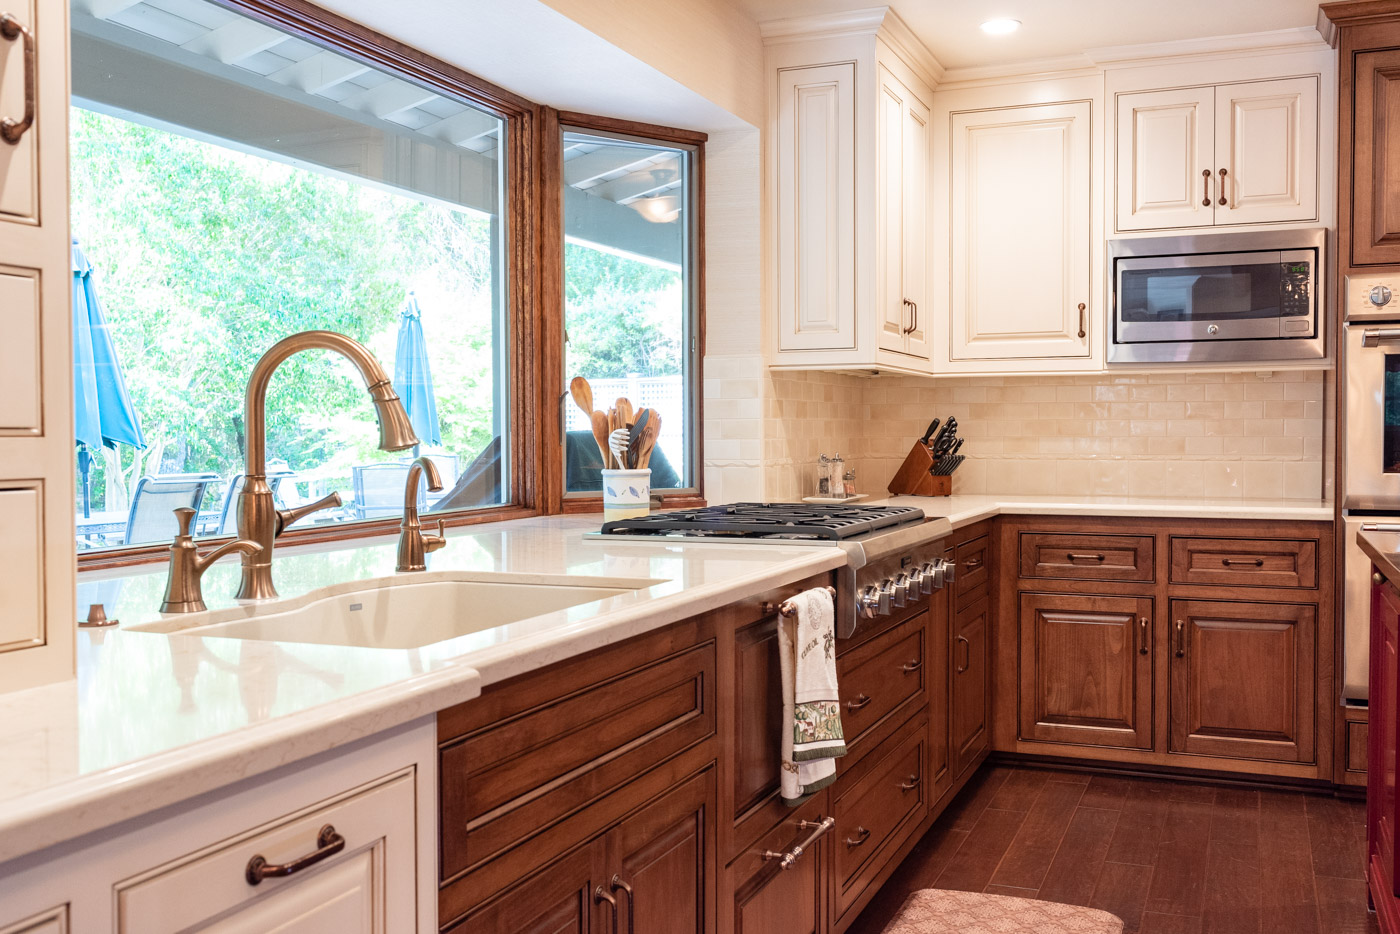 English Country custom kitchen cabinets with white painted cabinets and wood stain cabinets